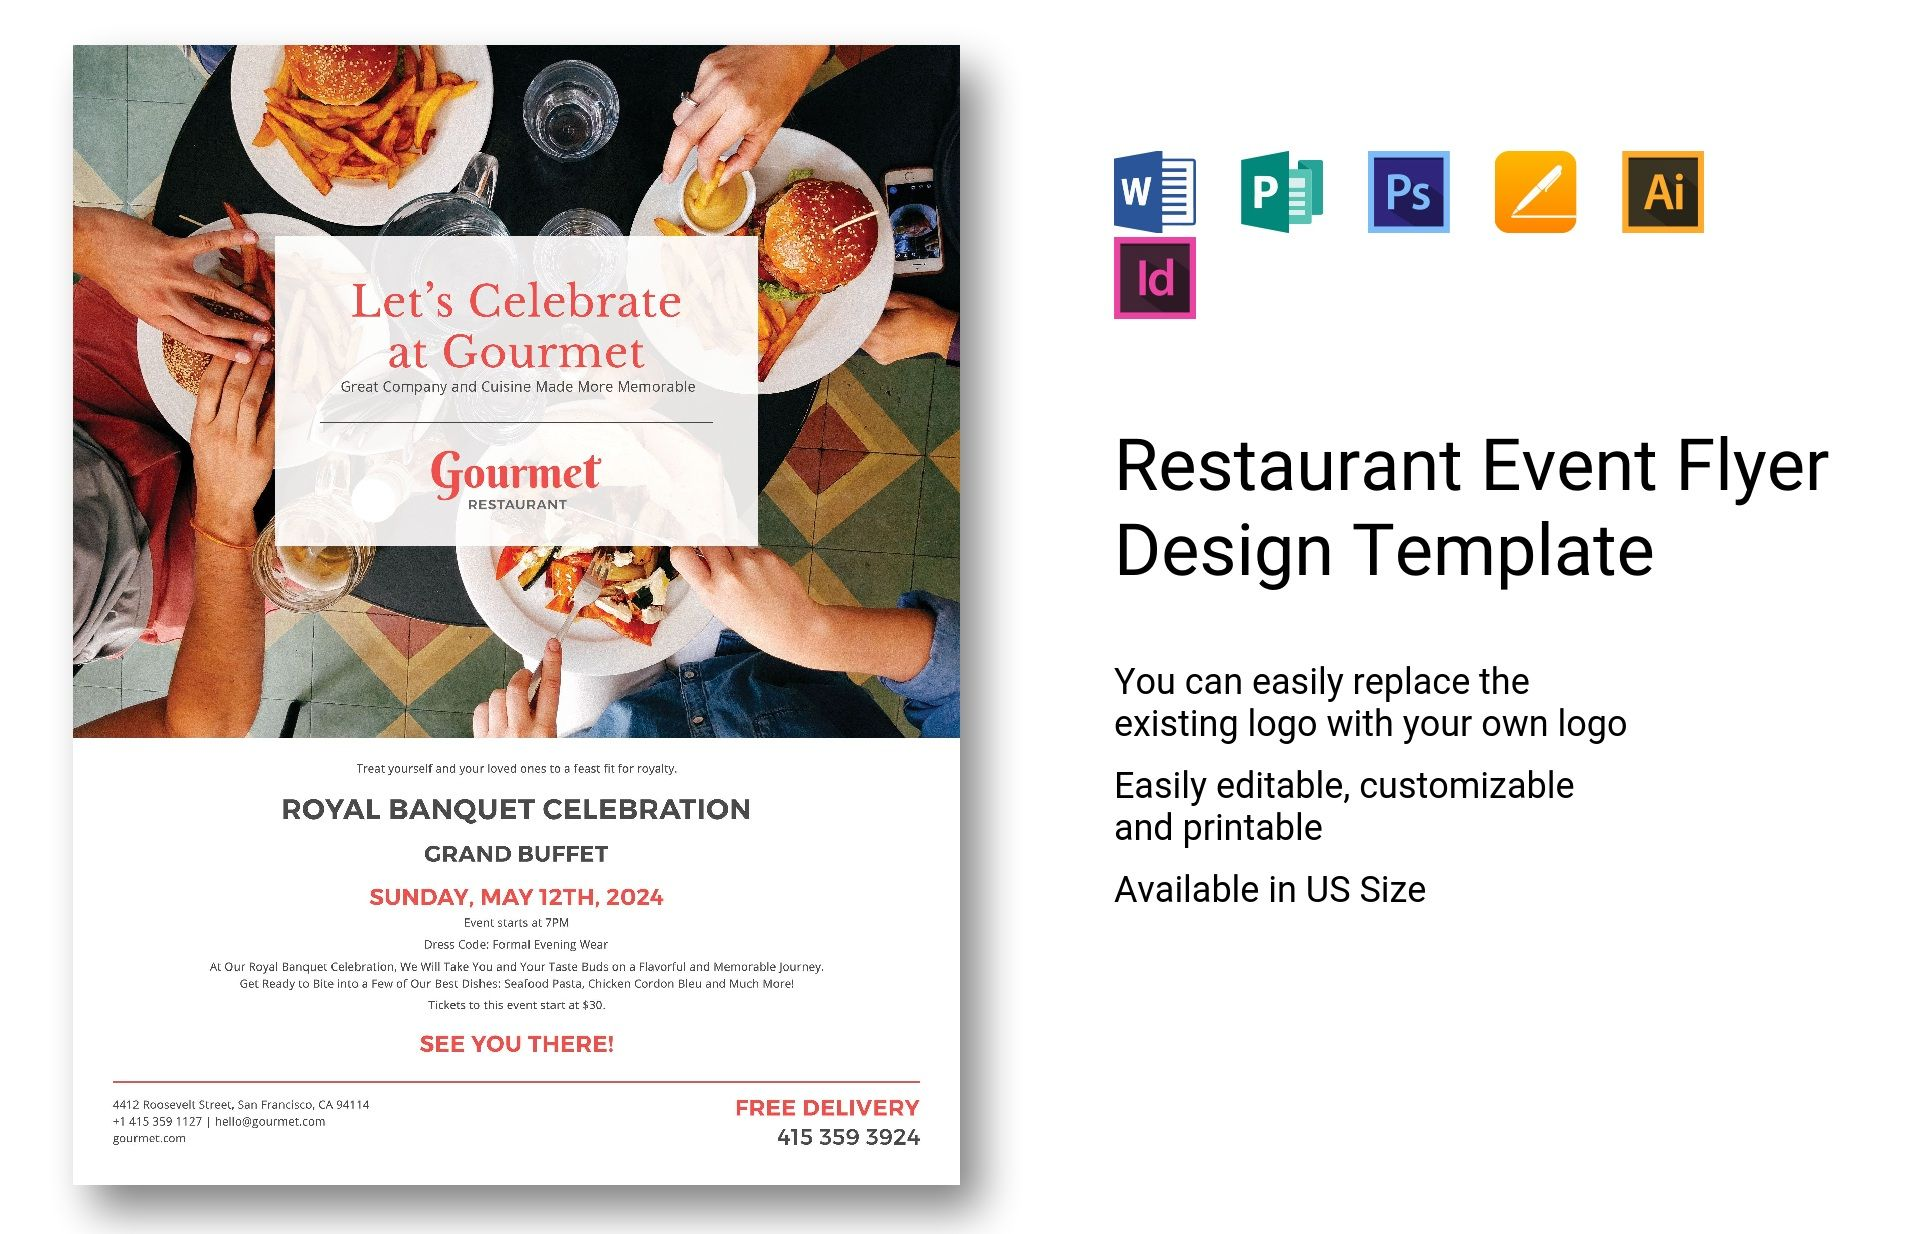 restaurant event flyer design template in psd  word  publisher  illustrator  indesign  apple pages